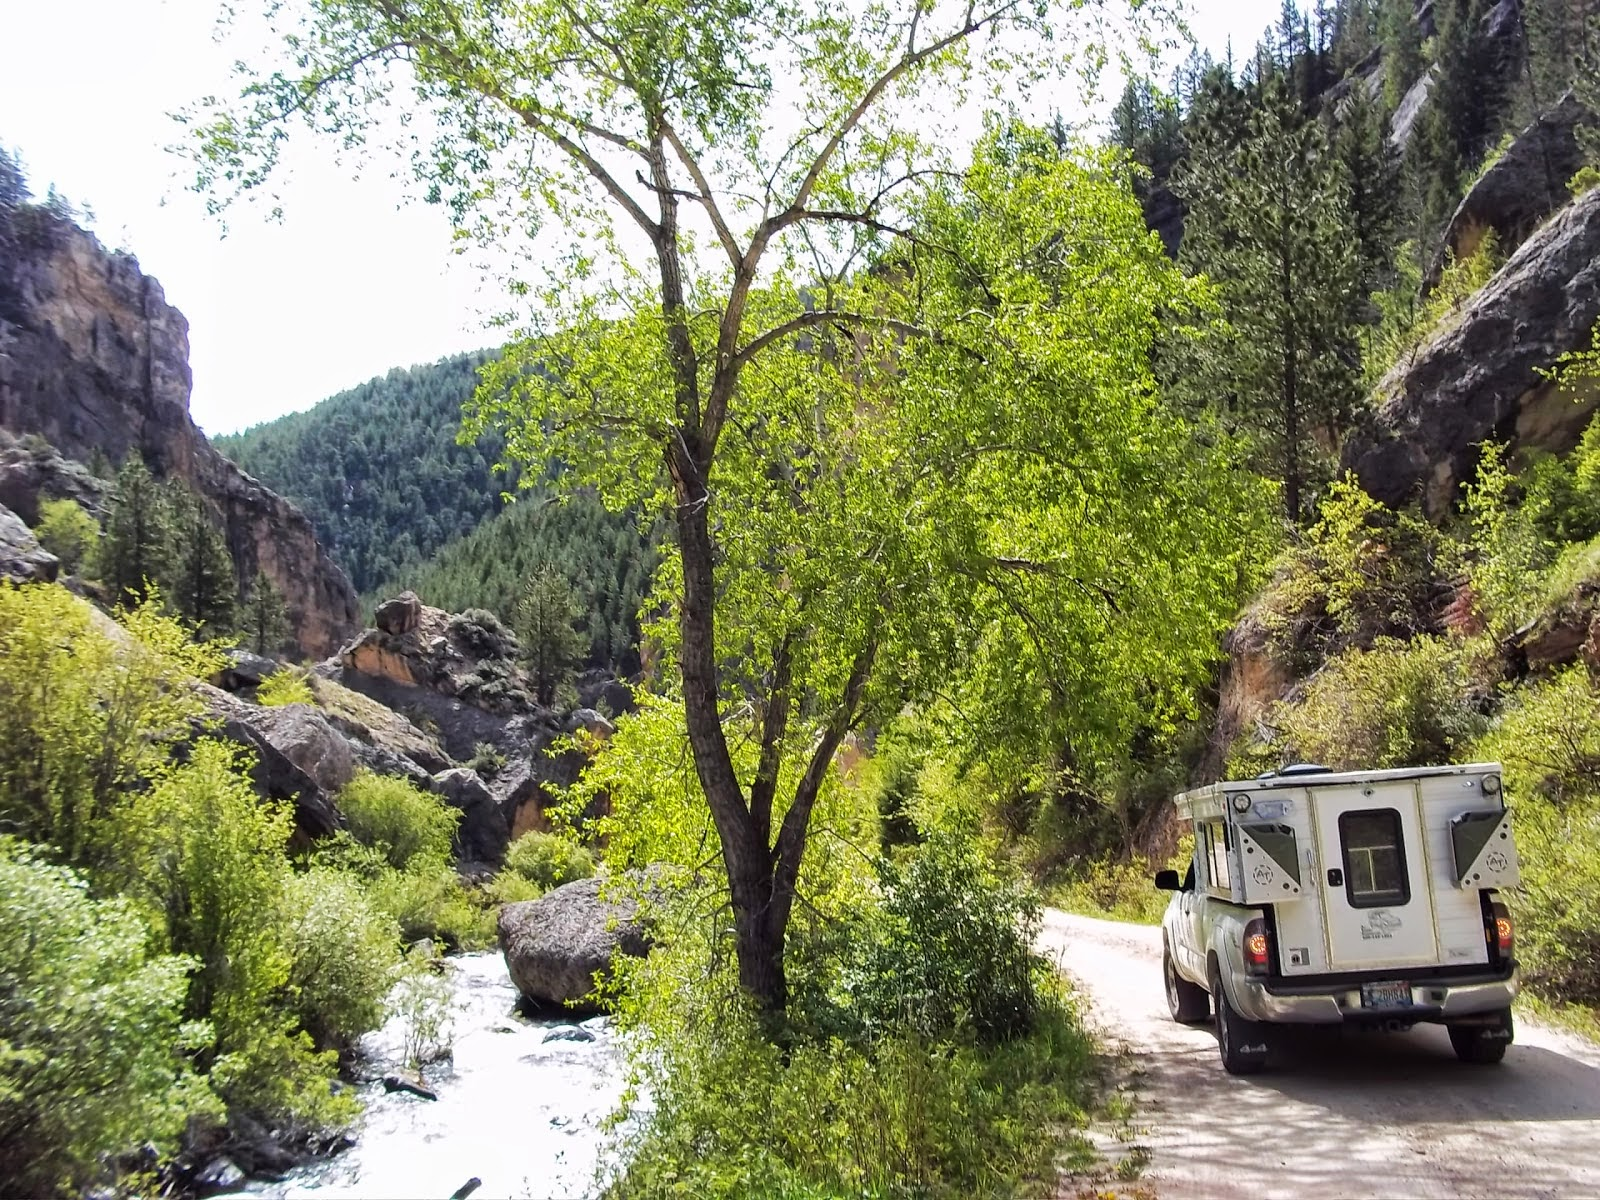 Insights, Tips For Traveling in Remote Areas